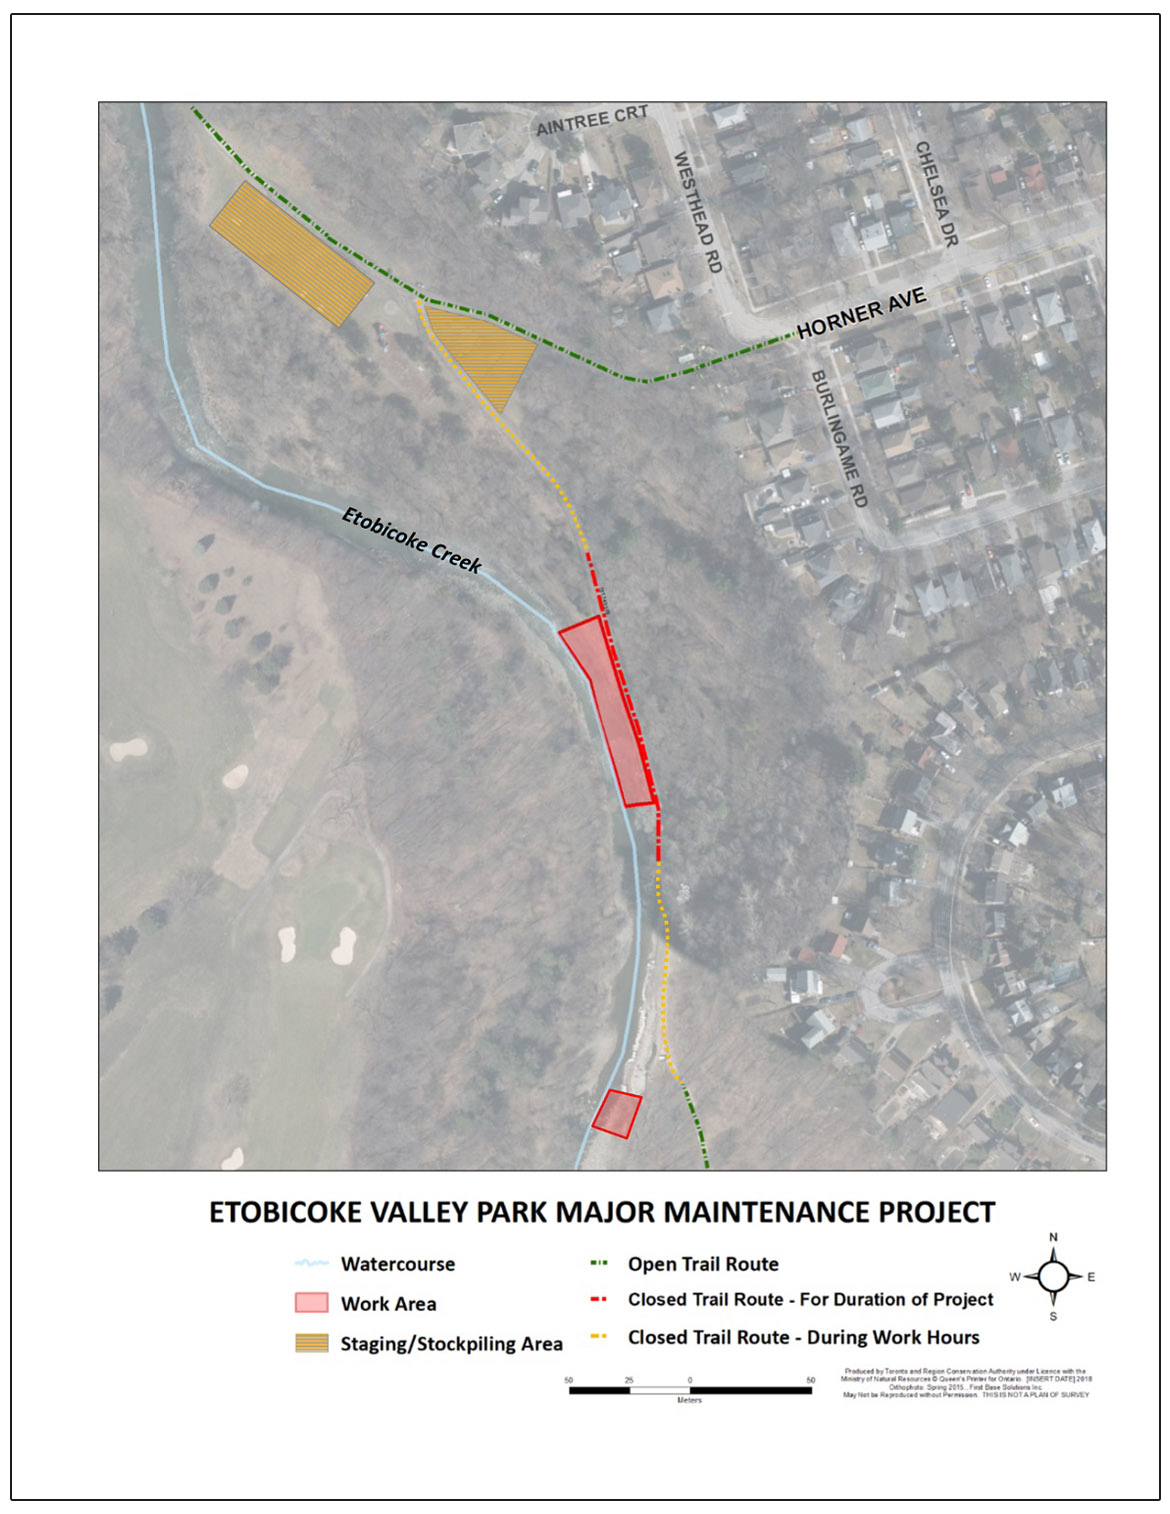 Etobicoke Valley Park Project information map